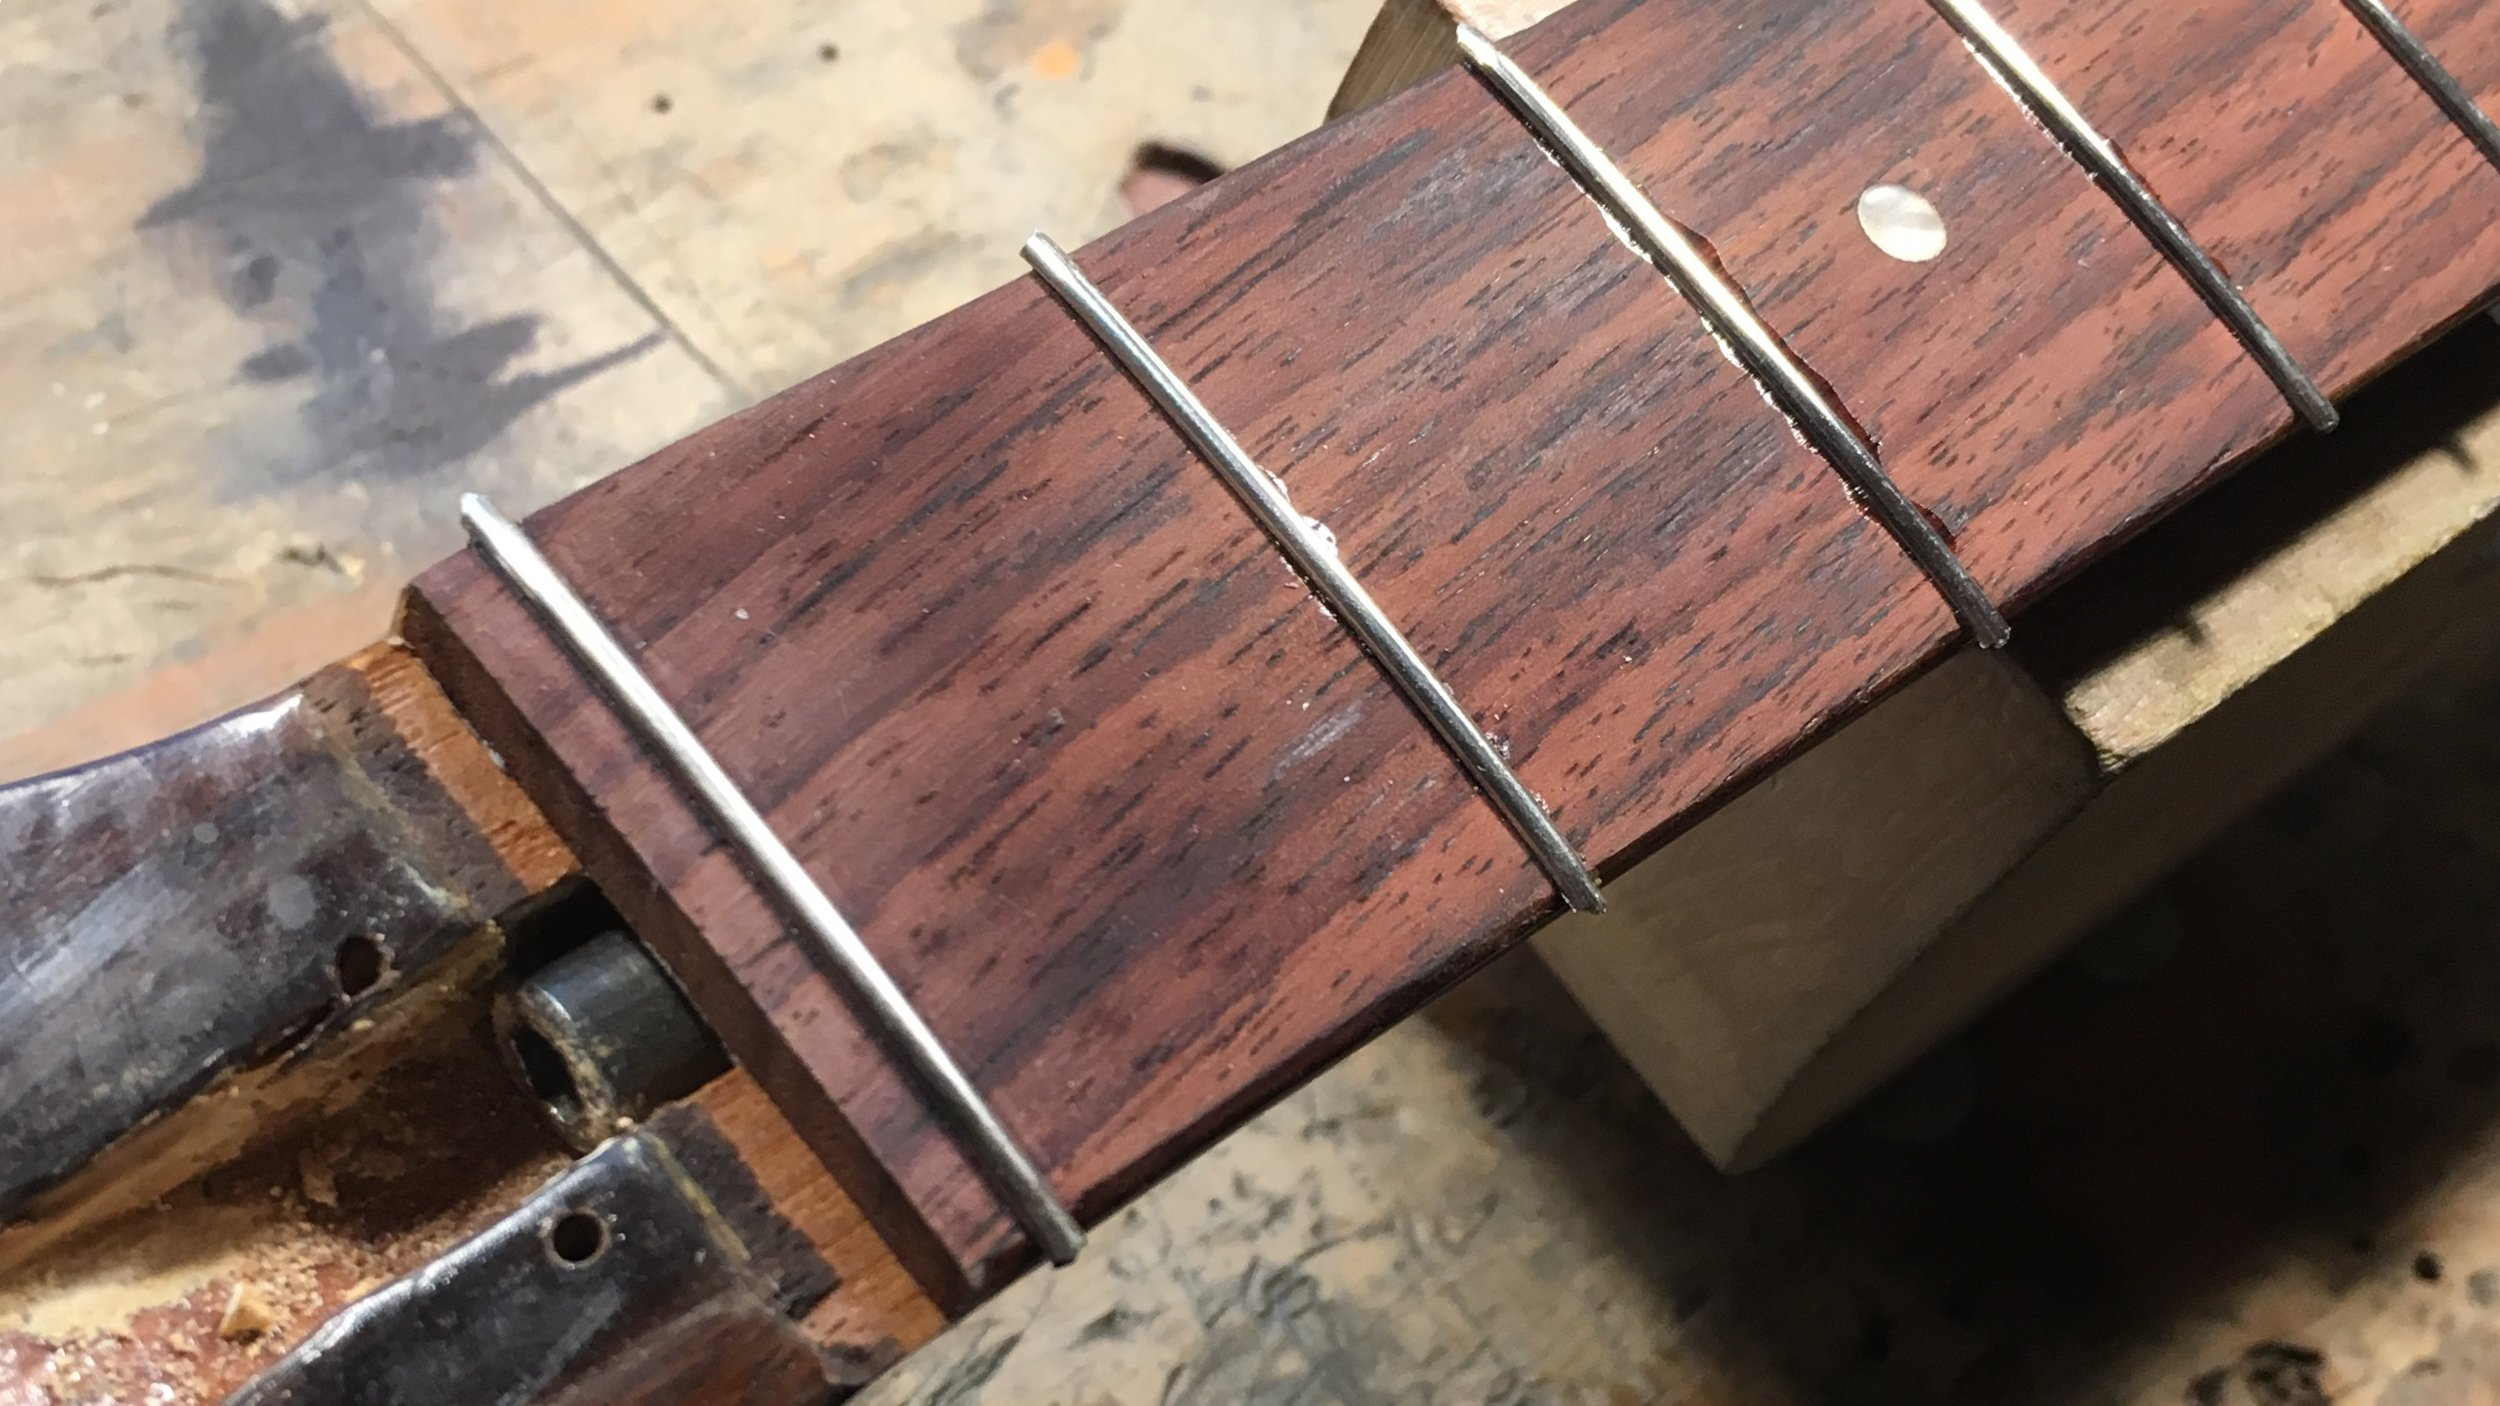 What do you do with a zero fret when you're refretting or levelling frets?